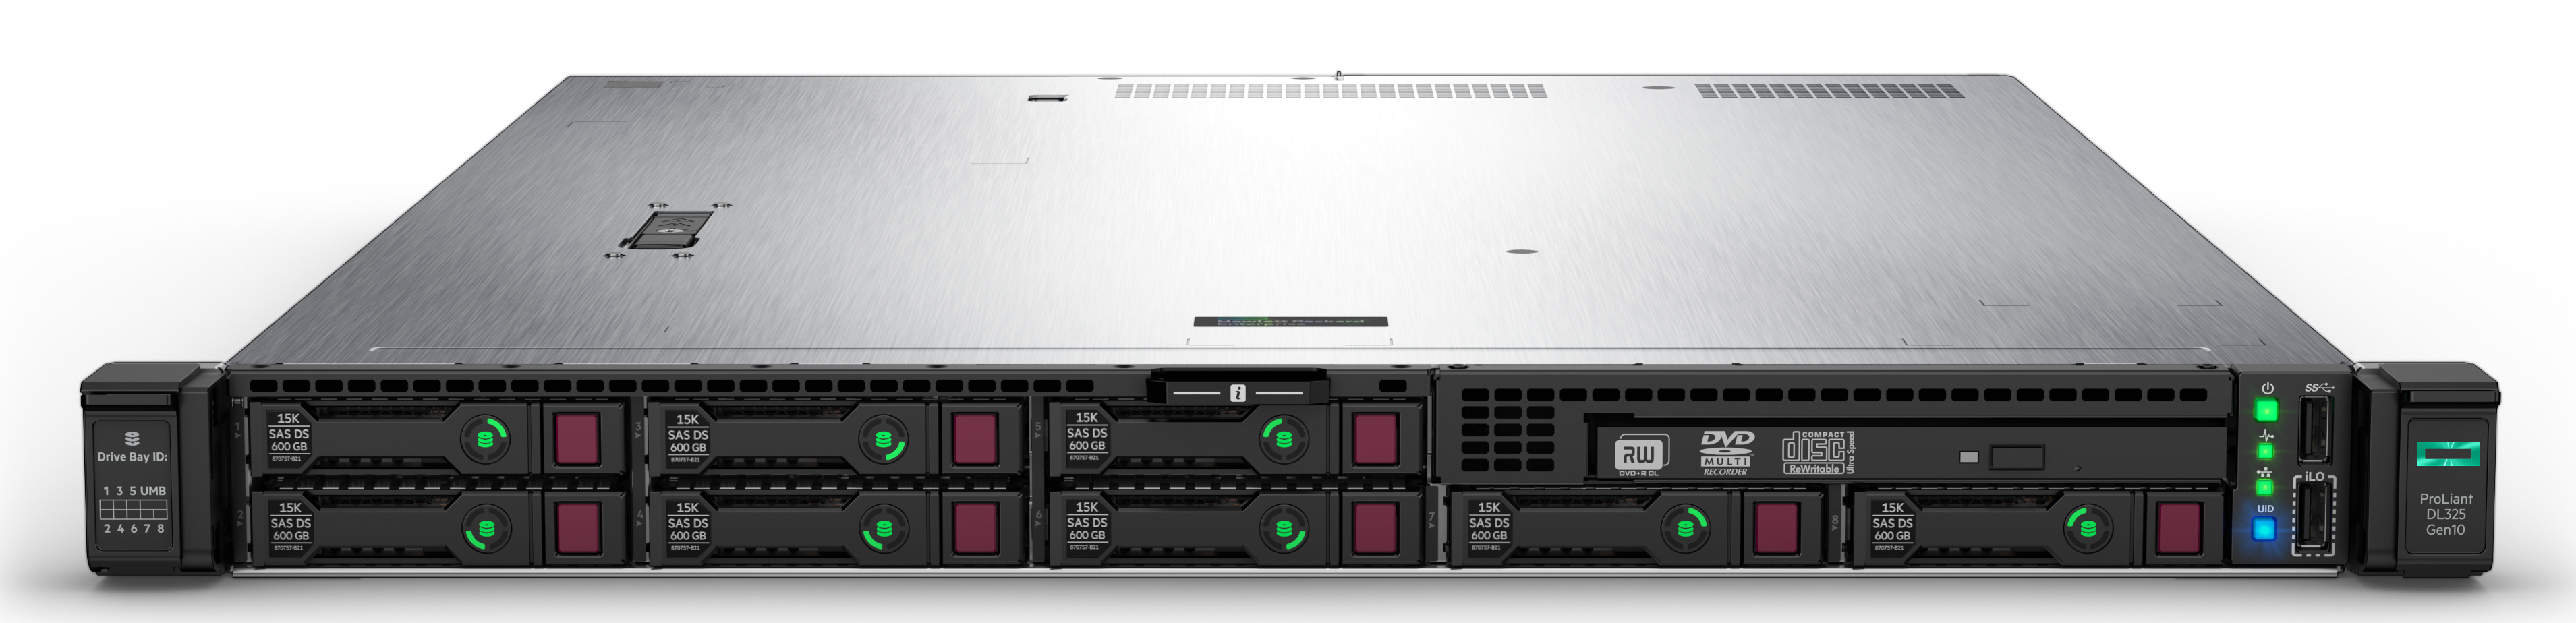 HPE ProLiant DL325 Gen10 8SFF